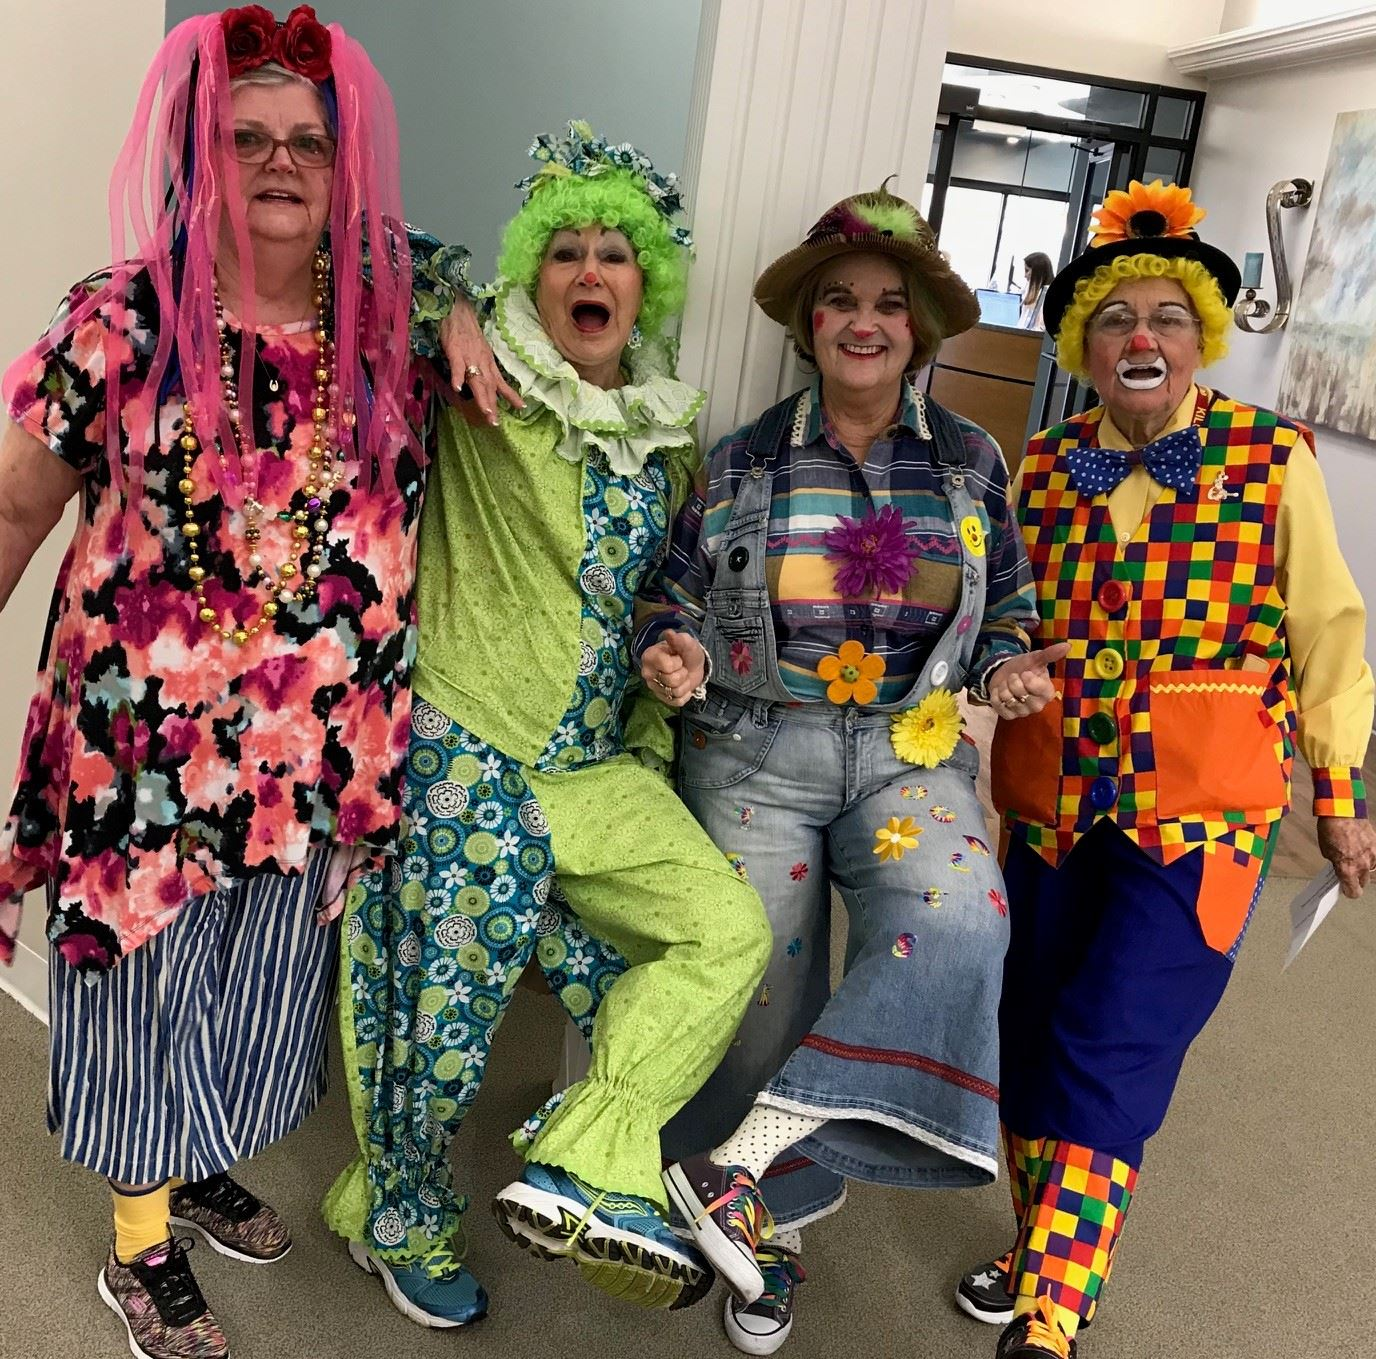 St. Clair Happy Clowns RagMop, Giggles, Trixie and Rainbow